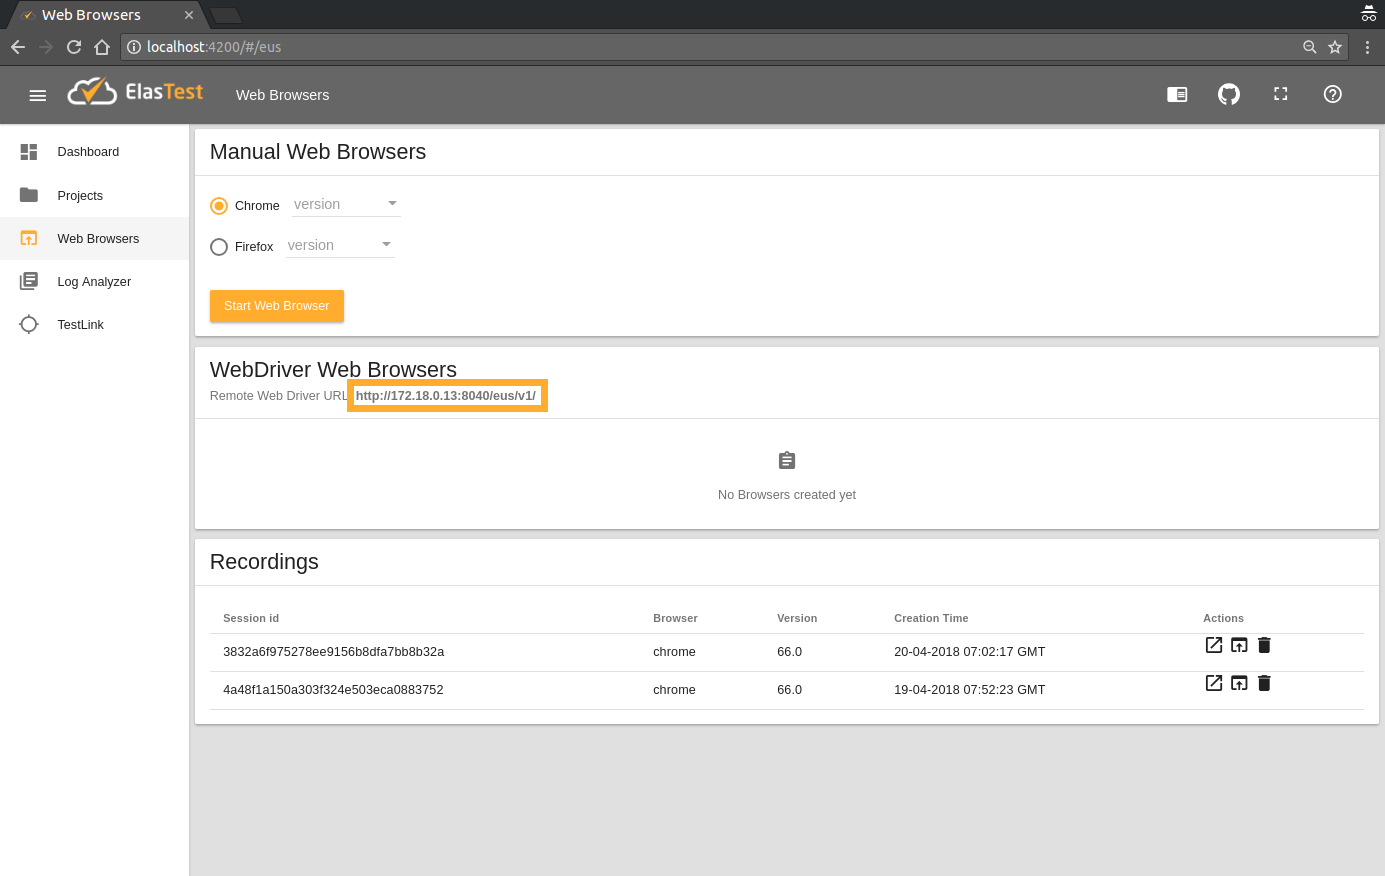 Elastest Documentation - Testing with Web Browsers from